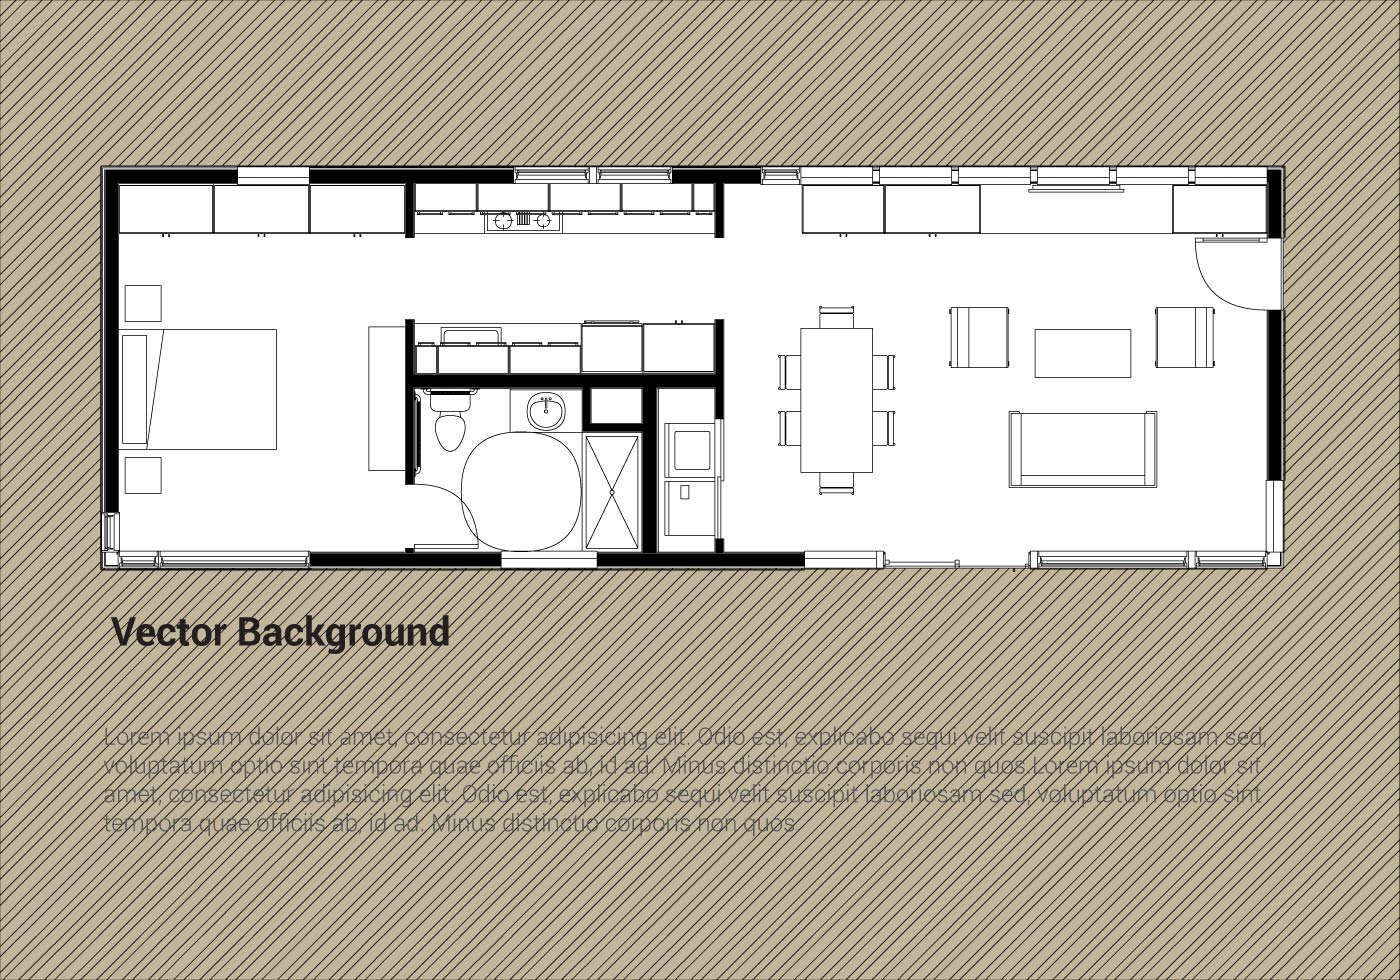 House Plan Free Vector Art - (22,022